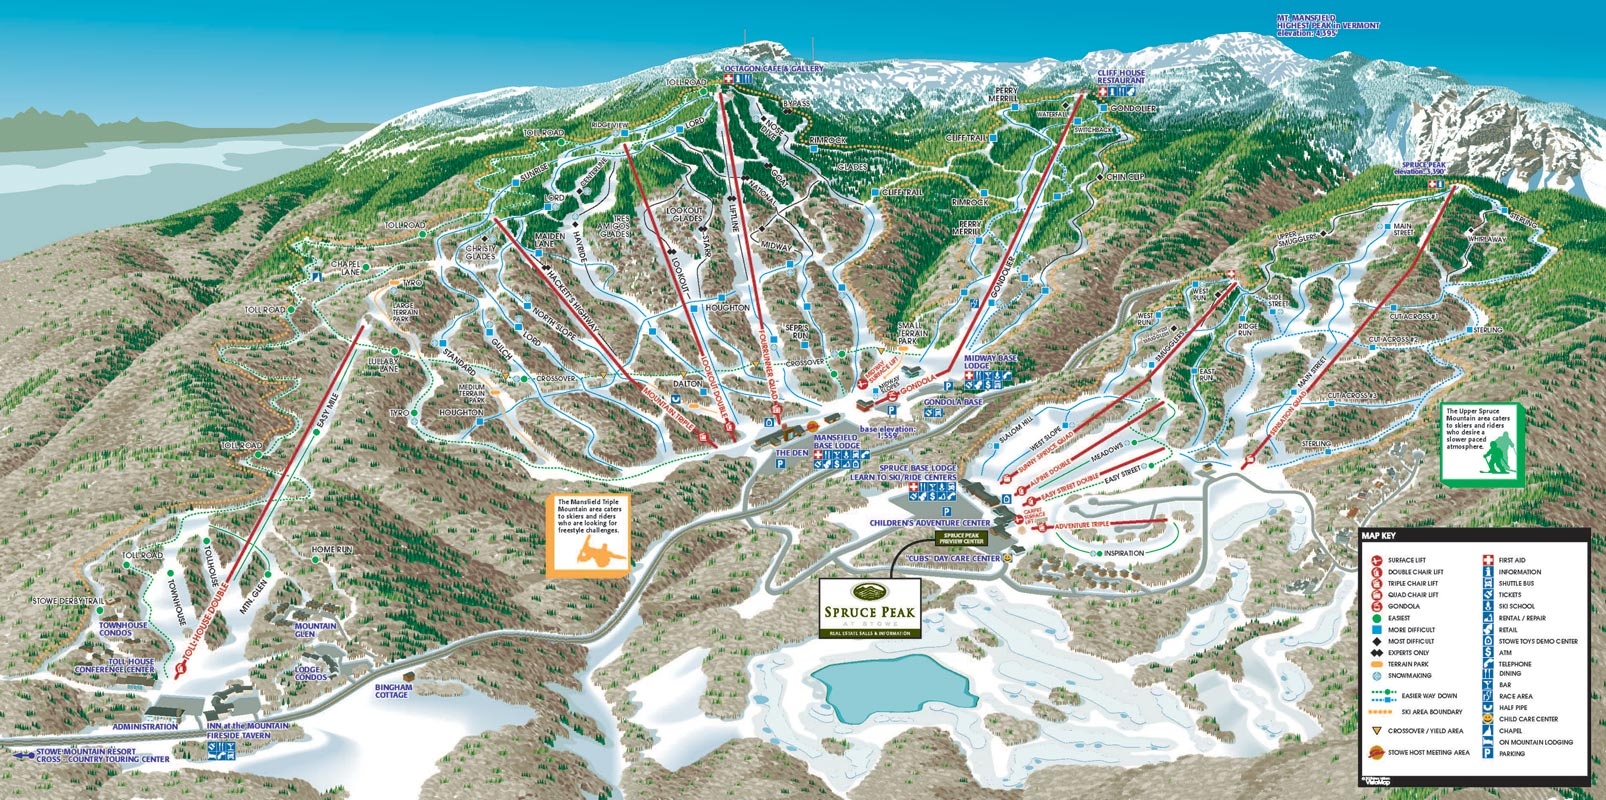 smugglers notch vt map with 212 on Mount Mansfield Vermont Trail Map together with Maps likewise Vermont Skiing Map moreover 2135081414950290903 besides Sugarbush Resort.